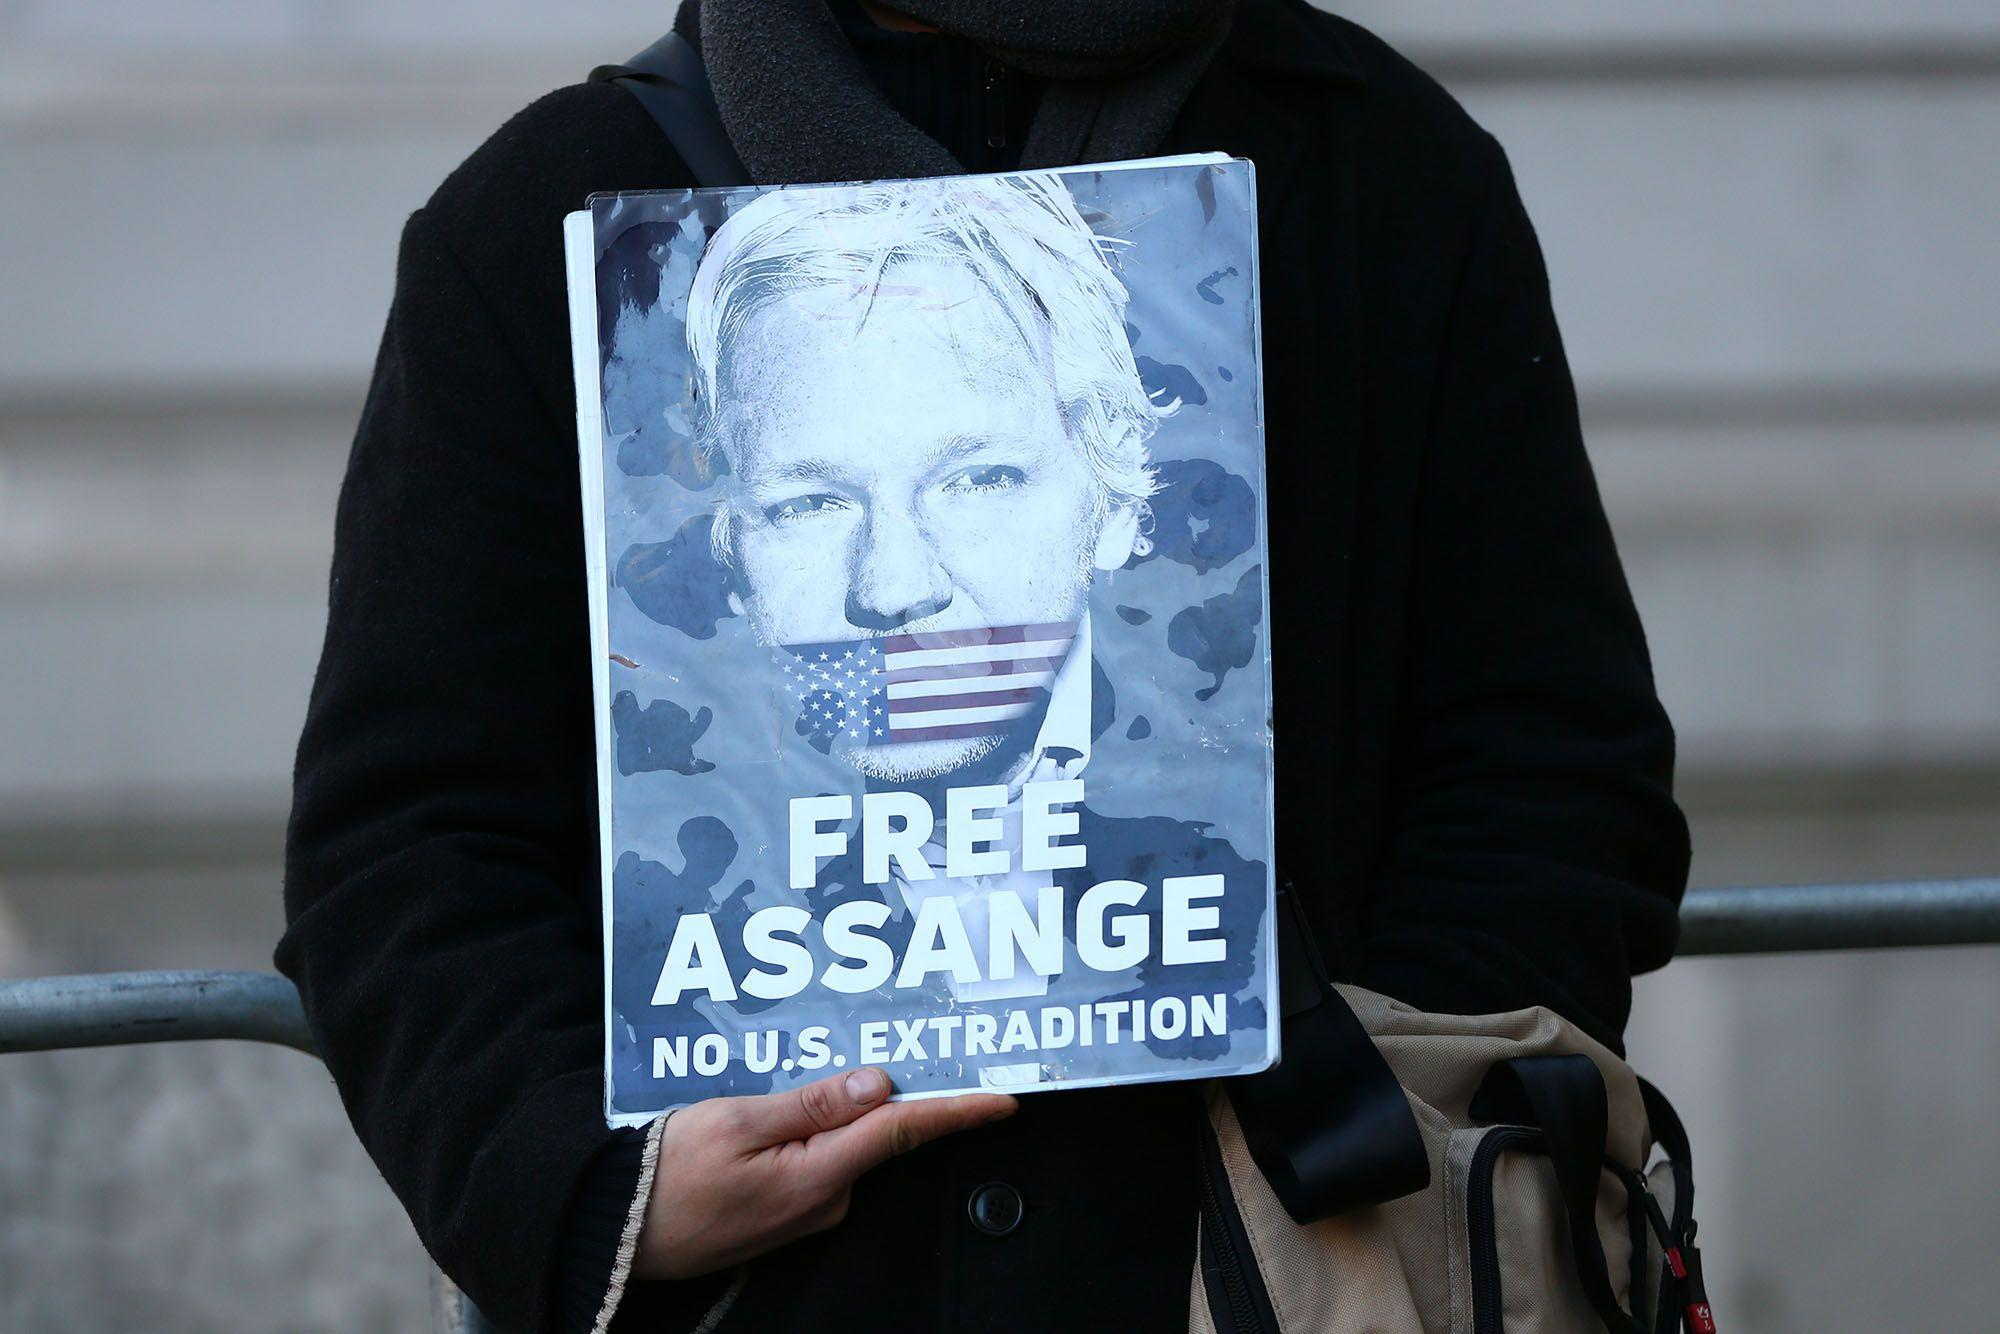 Sweden drops investigation into alleged rape by Julian Assange